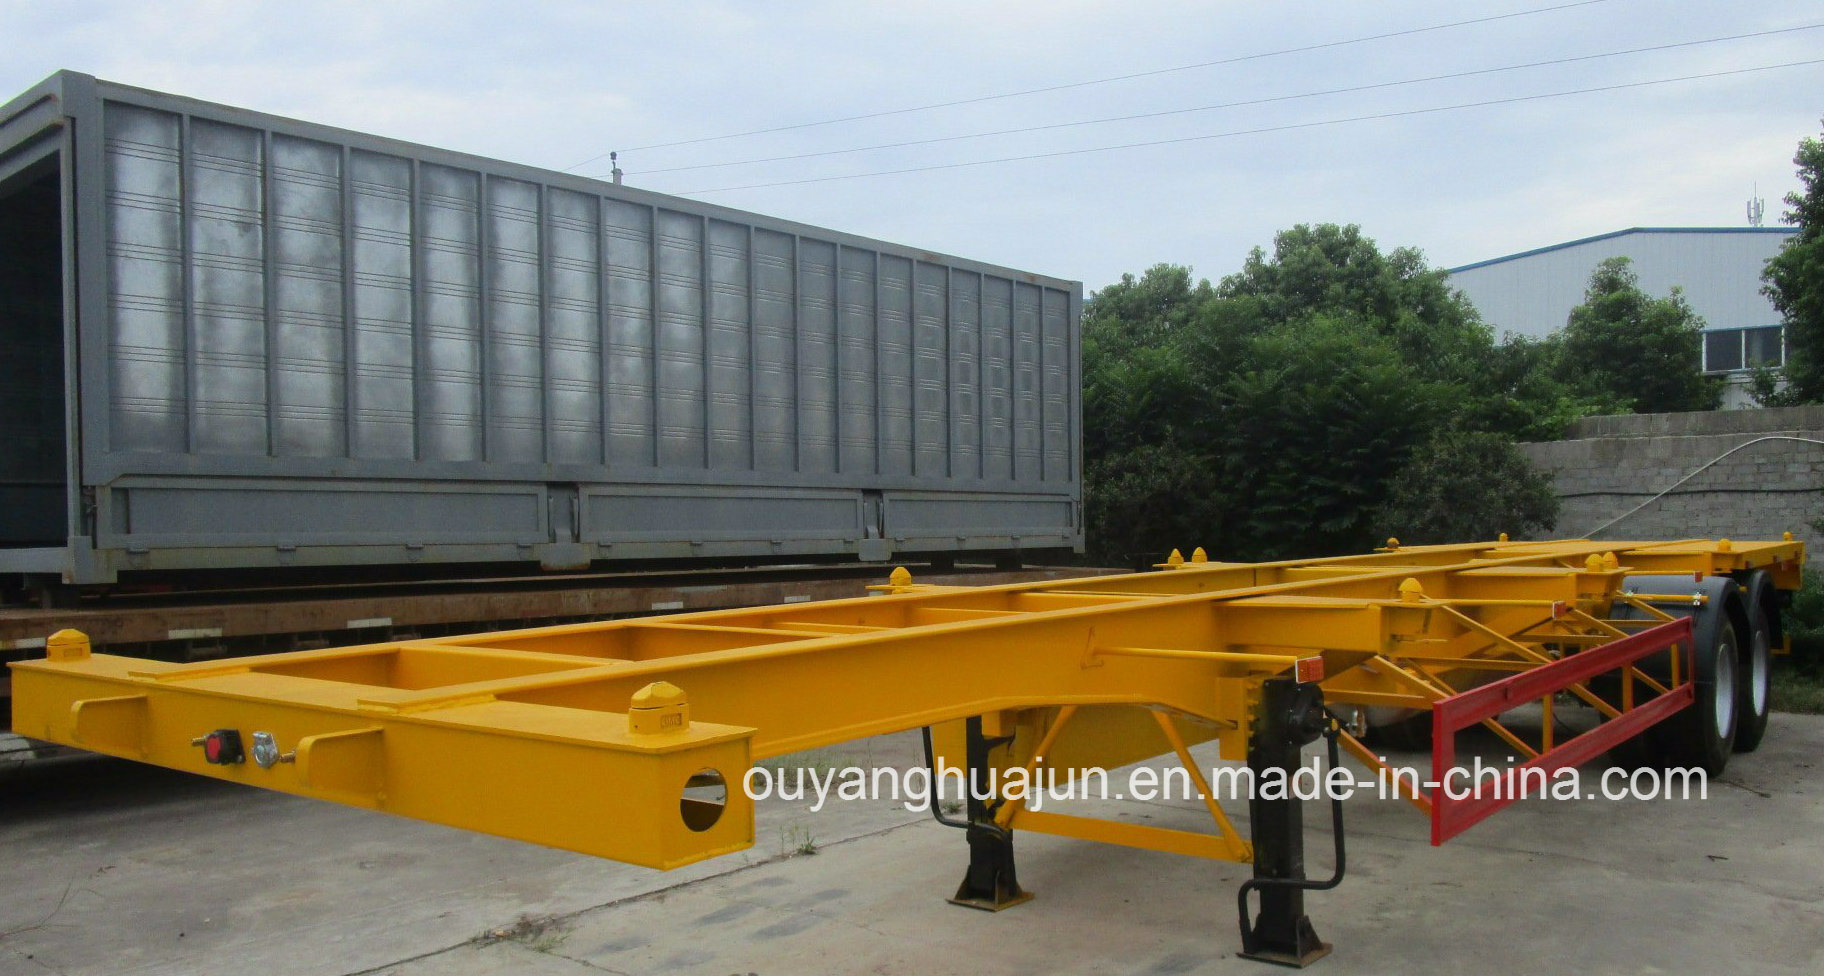 40 Feet Skeleton Container Semitrailer